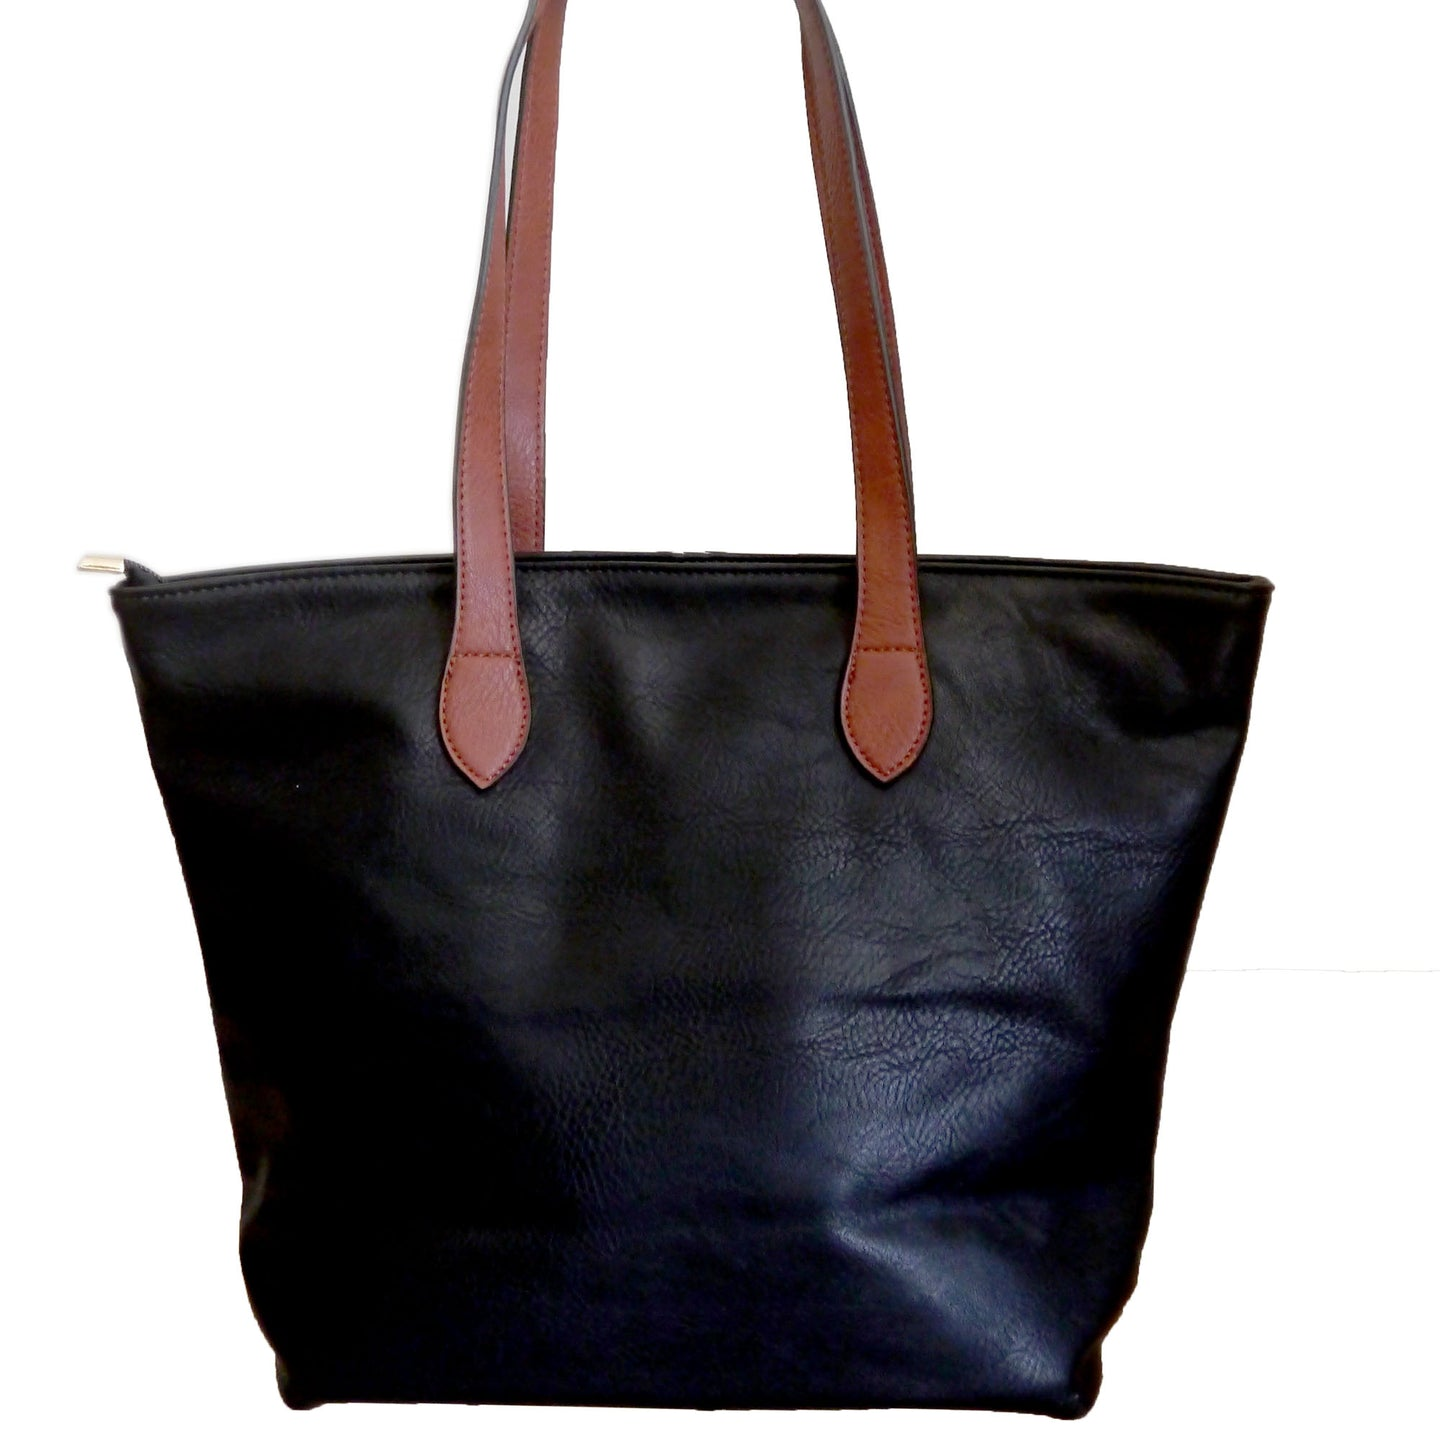 Black Shopper Bag- Tote handbag